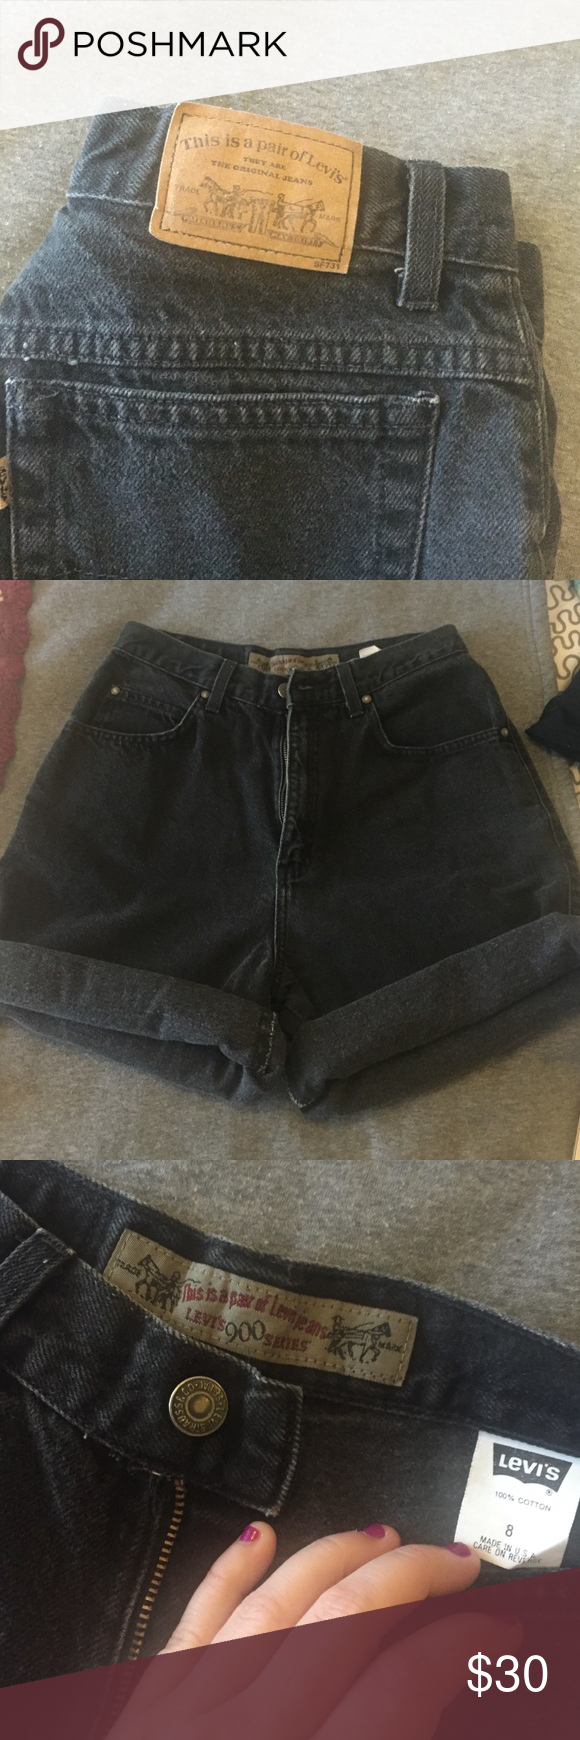 TRUE VINTAGE high waisted Levi's TRUE VINTAGE high waisted Levi's, size 8 but fit more like a regular 6 or tight 8, it depends on how you like the fit. The bottoms of these are rolled, there is no damage or stains. Make an offer! Levi's Shorts Jean Shorts